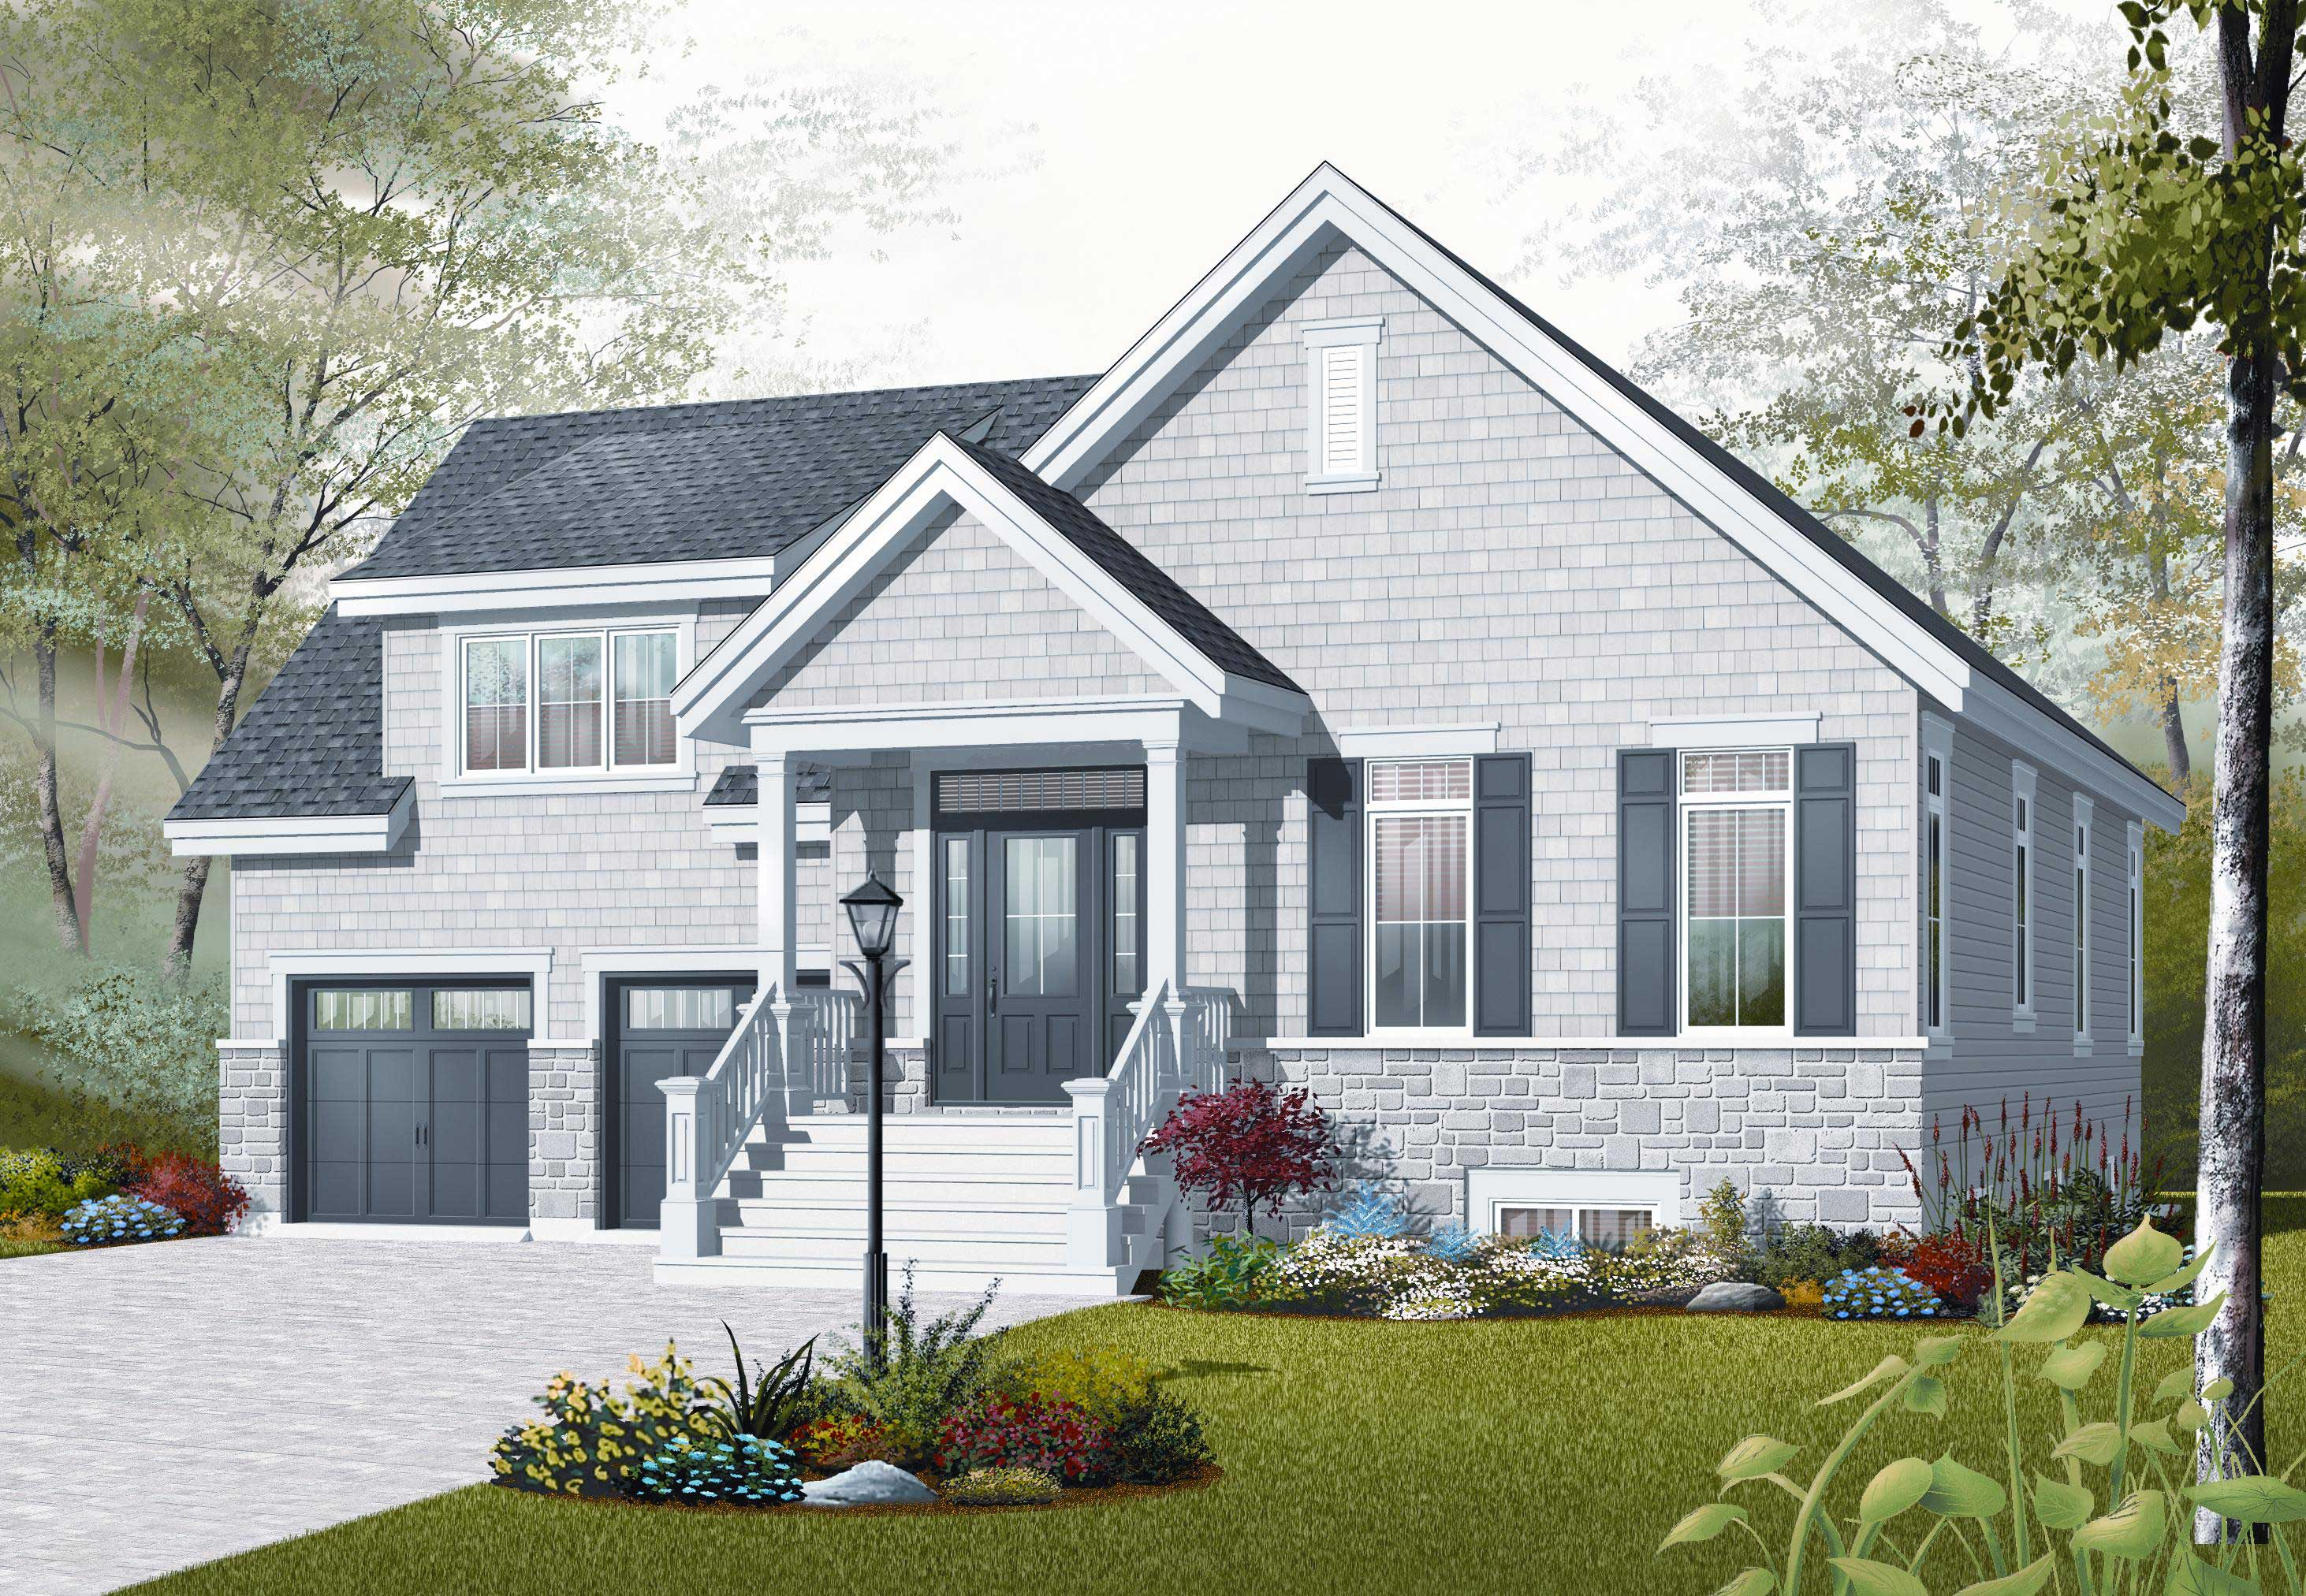 small country house plans home design 3273 126 1056 this is the front elevation for these country house plans